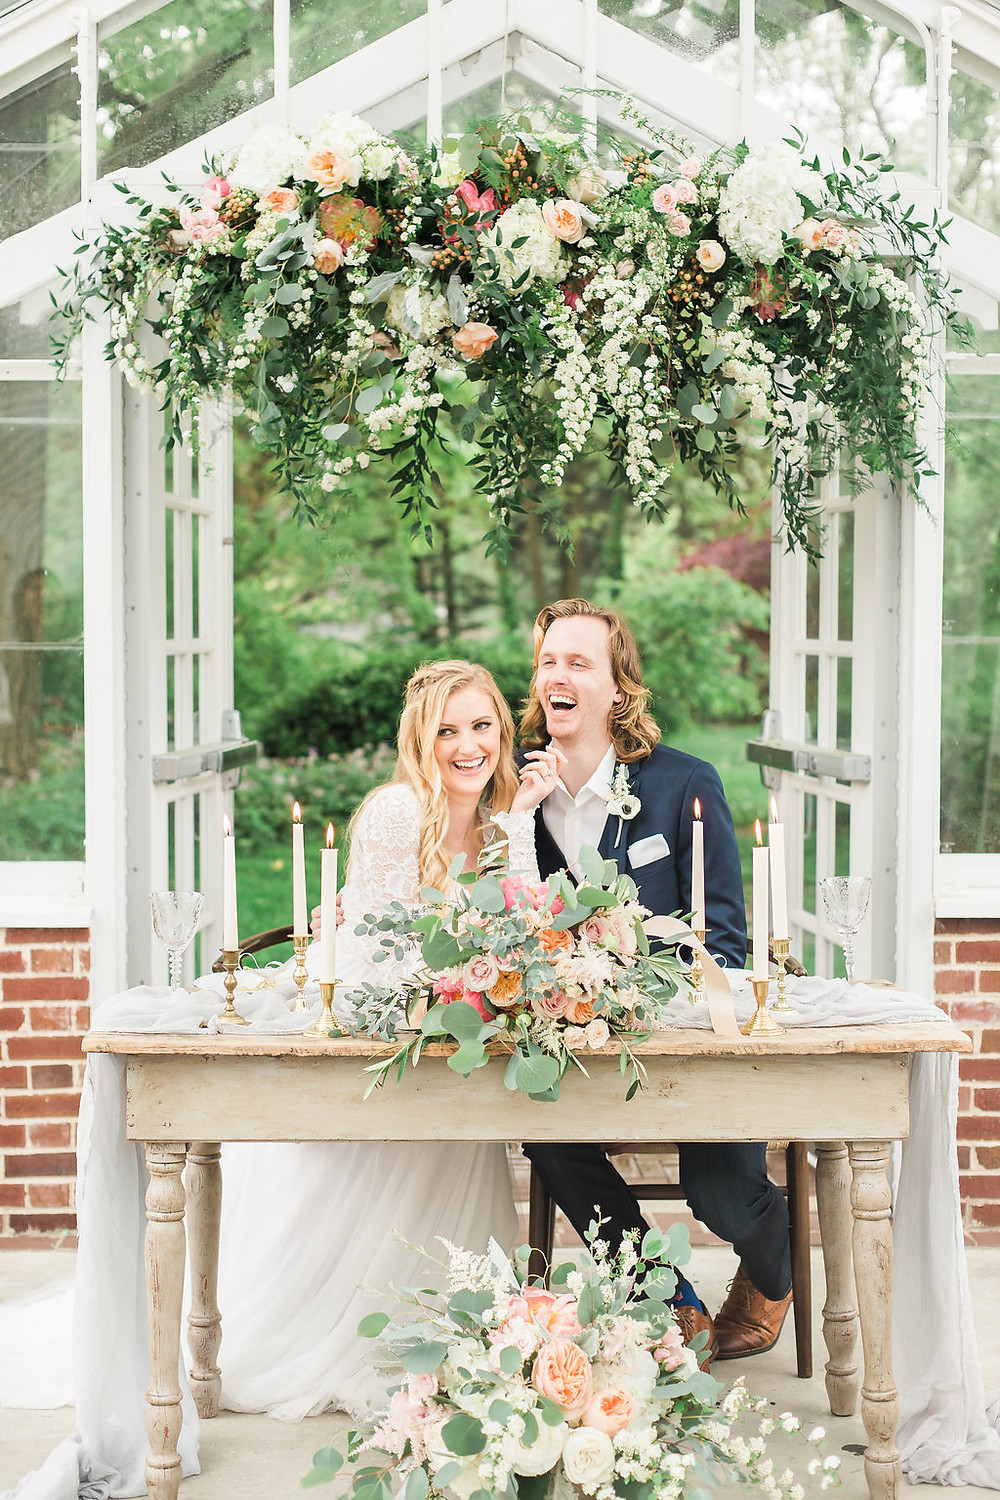 Garden arch is the focal point in the mansion greenhouse, for a tiny, elopement wedding reception